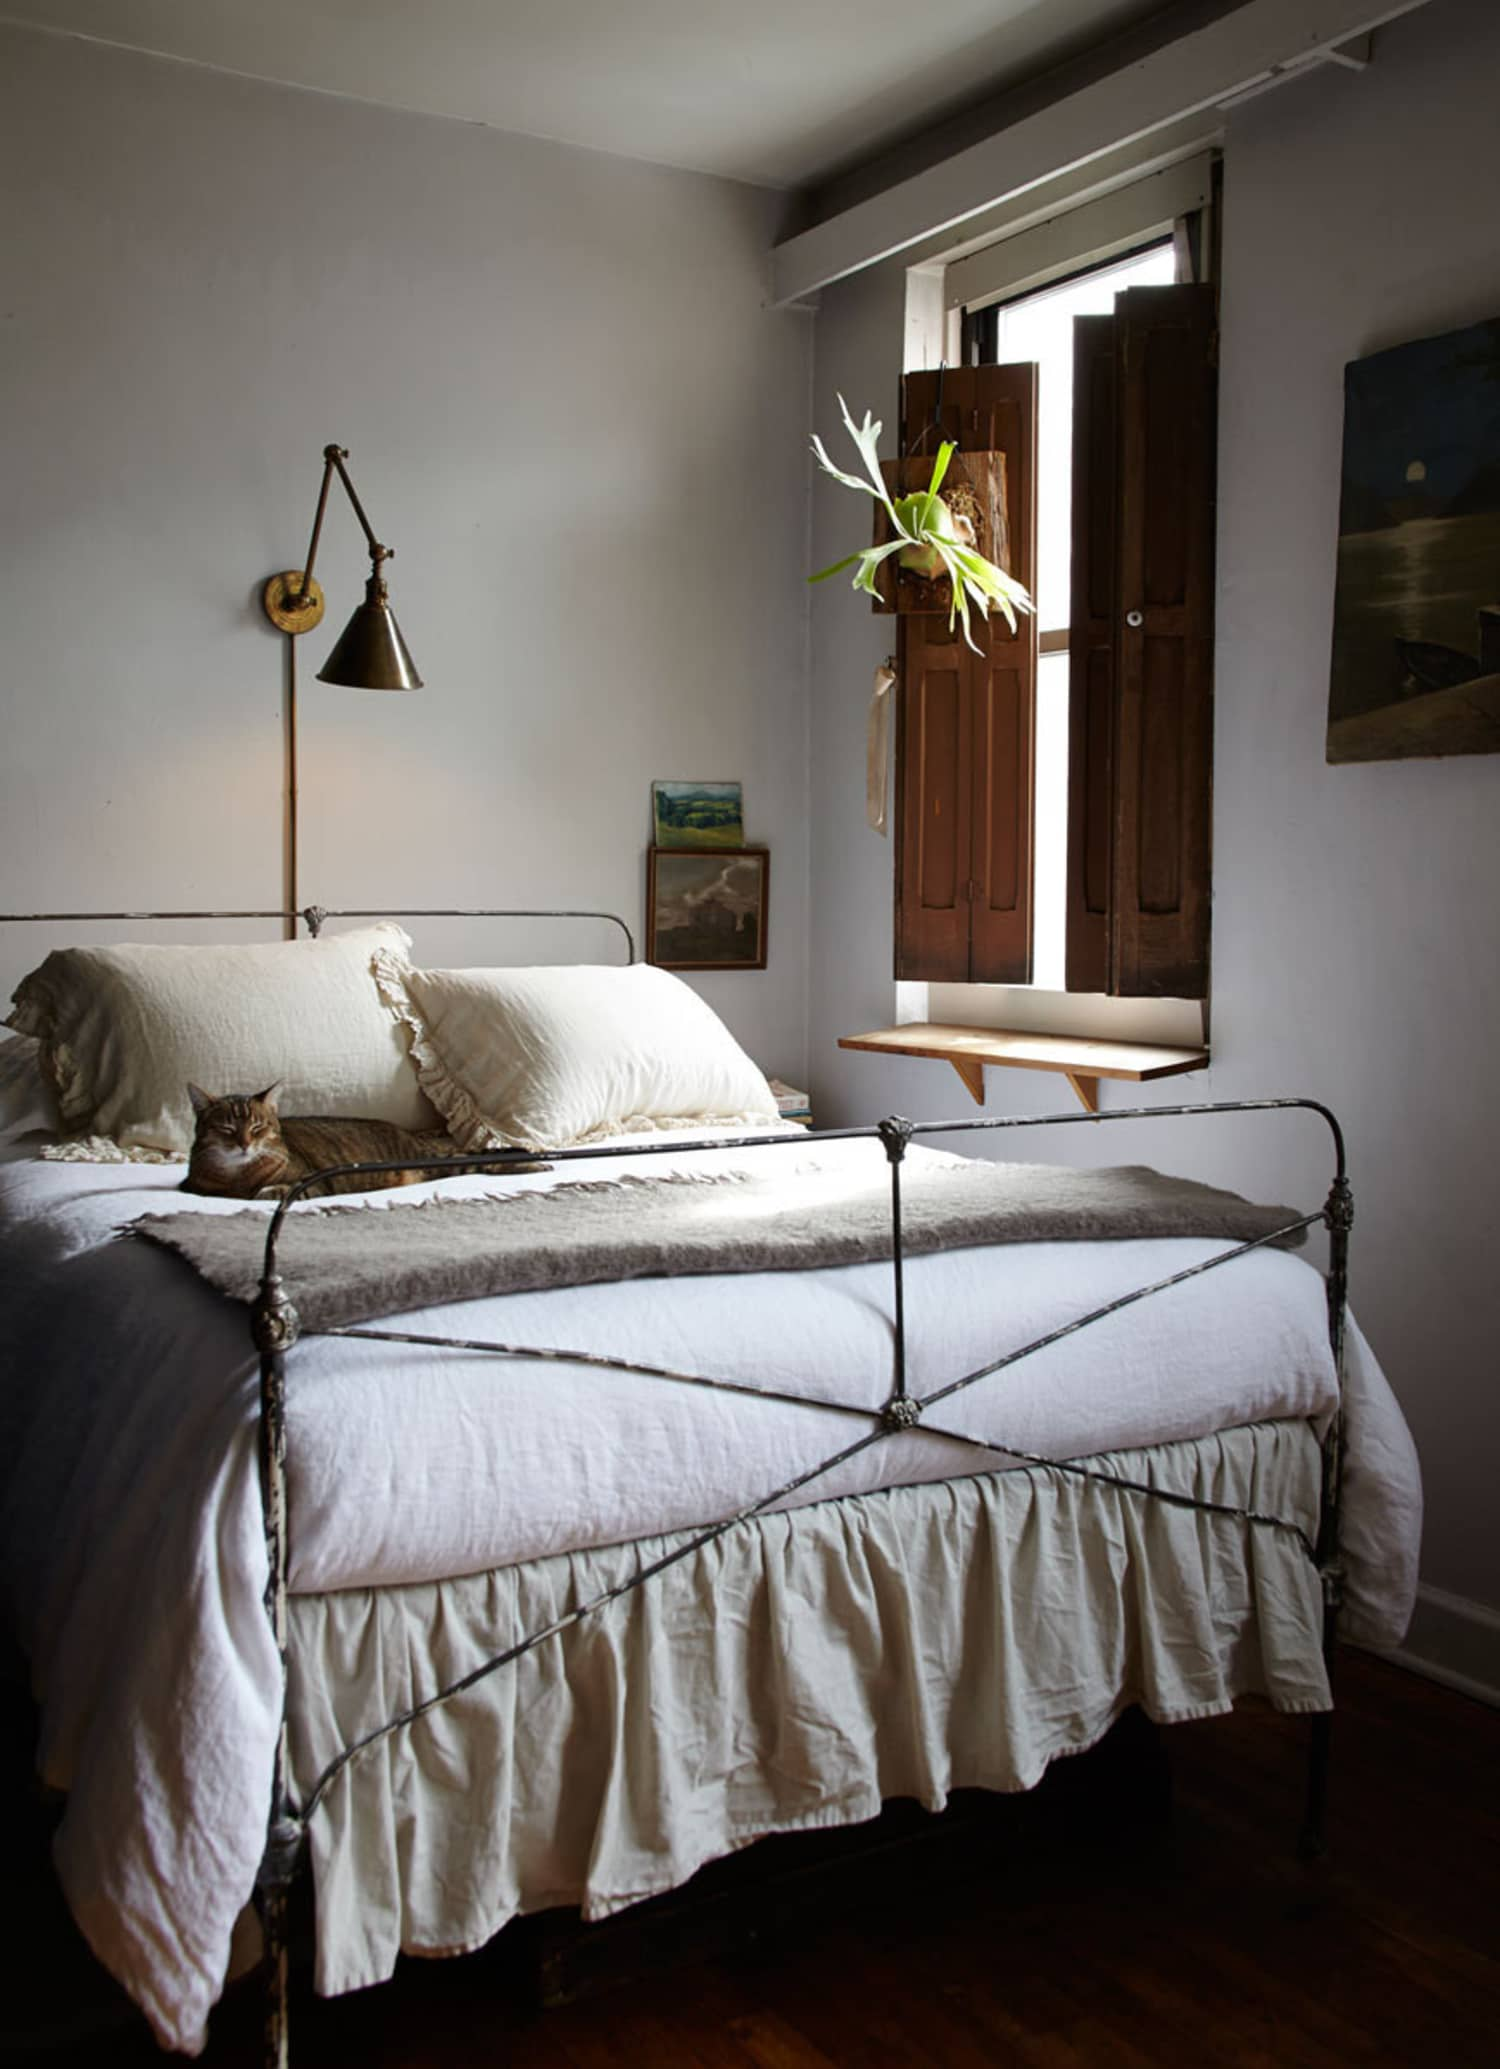 Deliciously Moody: Stylishly Serene Bedrooms